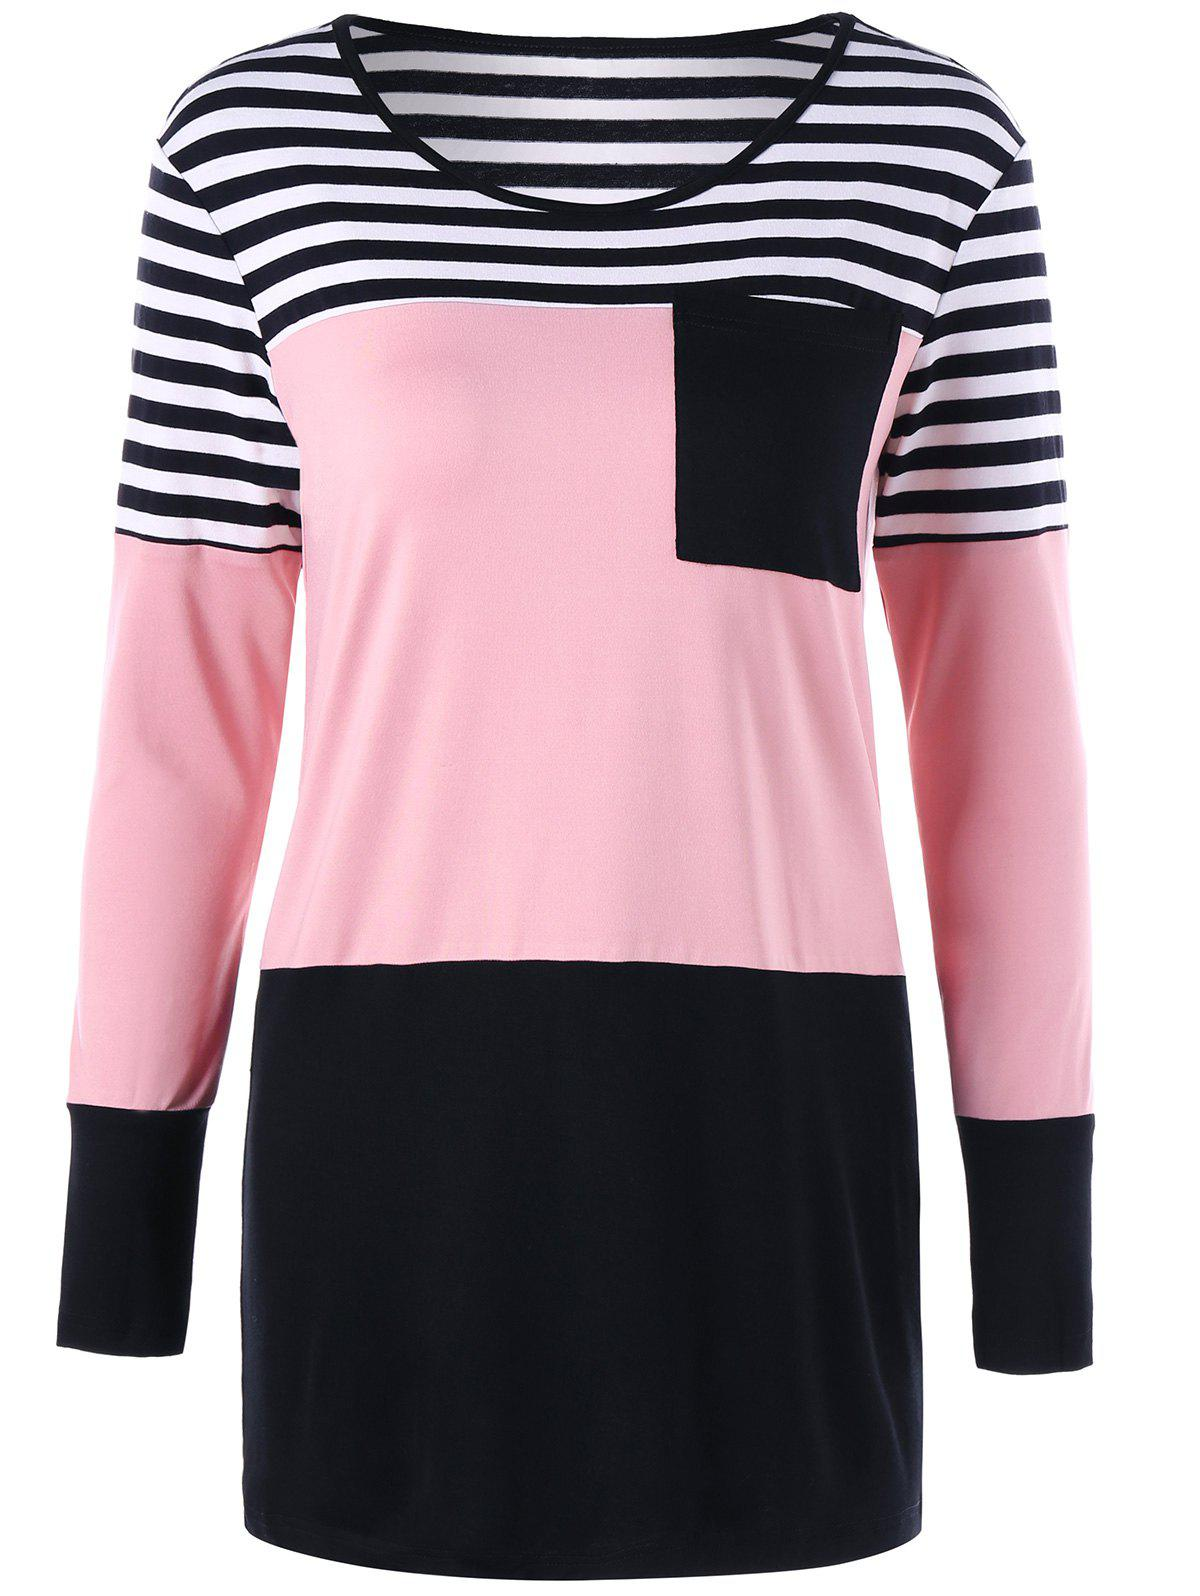 Patch Pocket Slim Striped Tunic TopWOMEN<br><br>Size: 2XL; Color: LIGHT PINK; Material: Polyester,Spandex; Shirt Length: Long; Sleeve Length: Full; Collar: Round Neck; Style: Casual; Pattern Type: Striped; Season: Fall,Spring,Summer; Weight: 0.2600kg; Package Contents: 1 x Top;